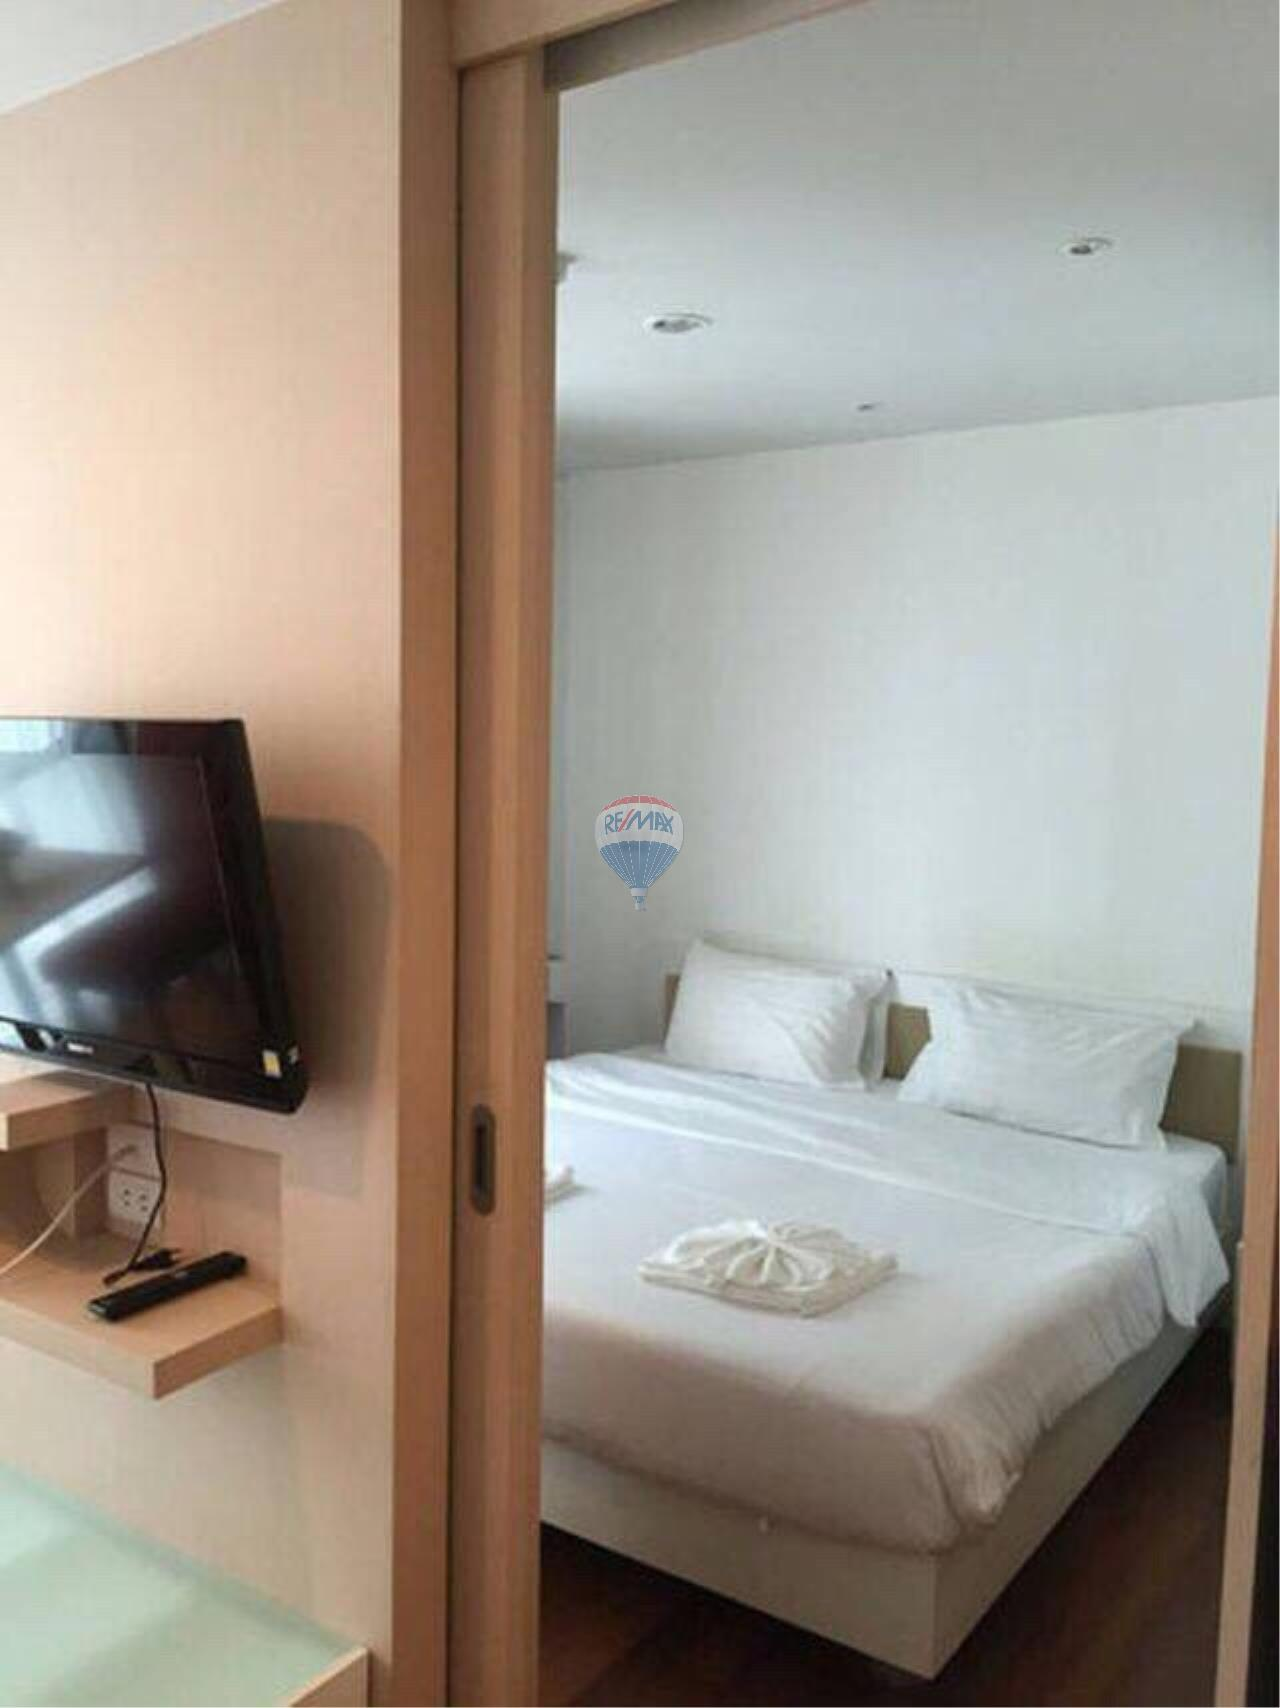 RE/MAX Top Properties Agency's Phuket,Patong Beach 1 Bedroom Condo For Rent 4